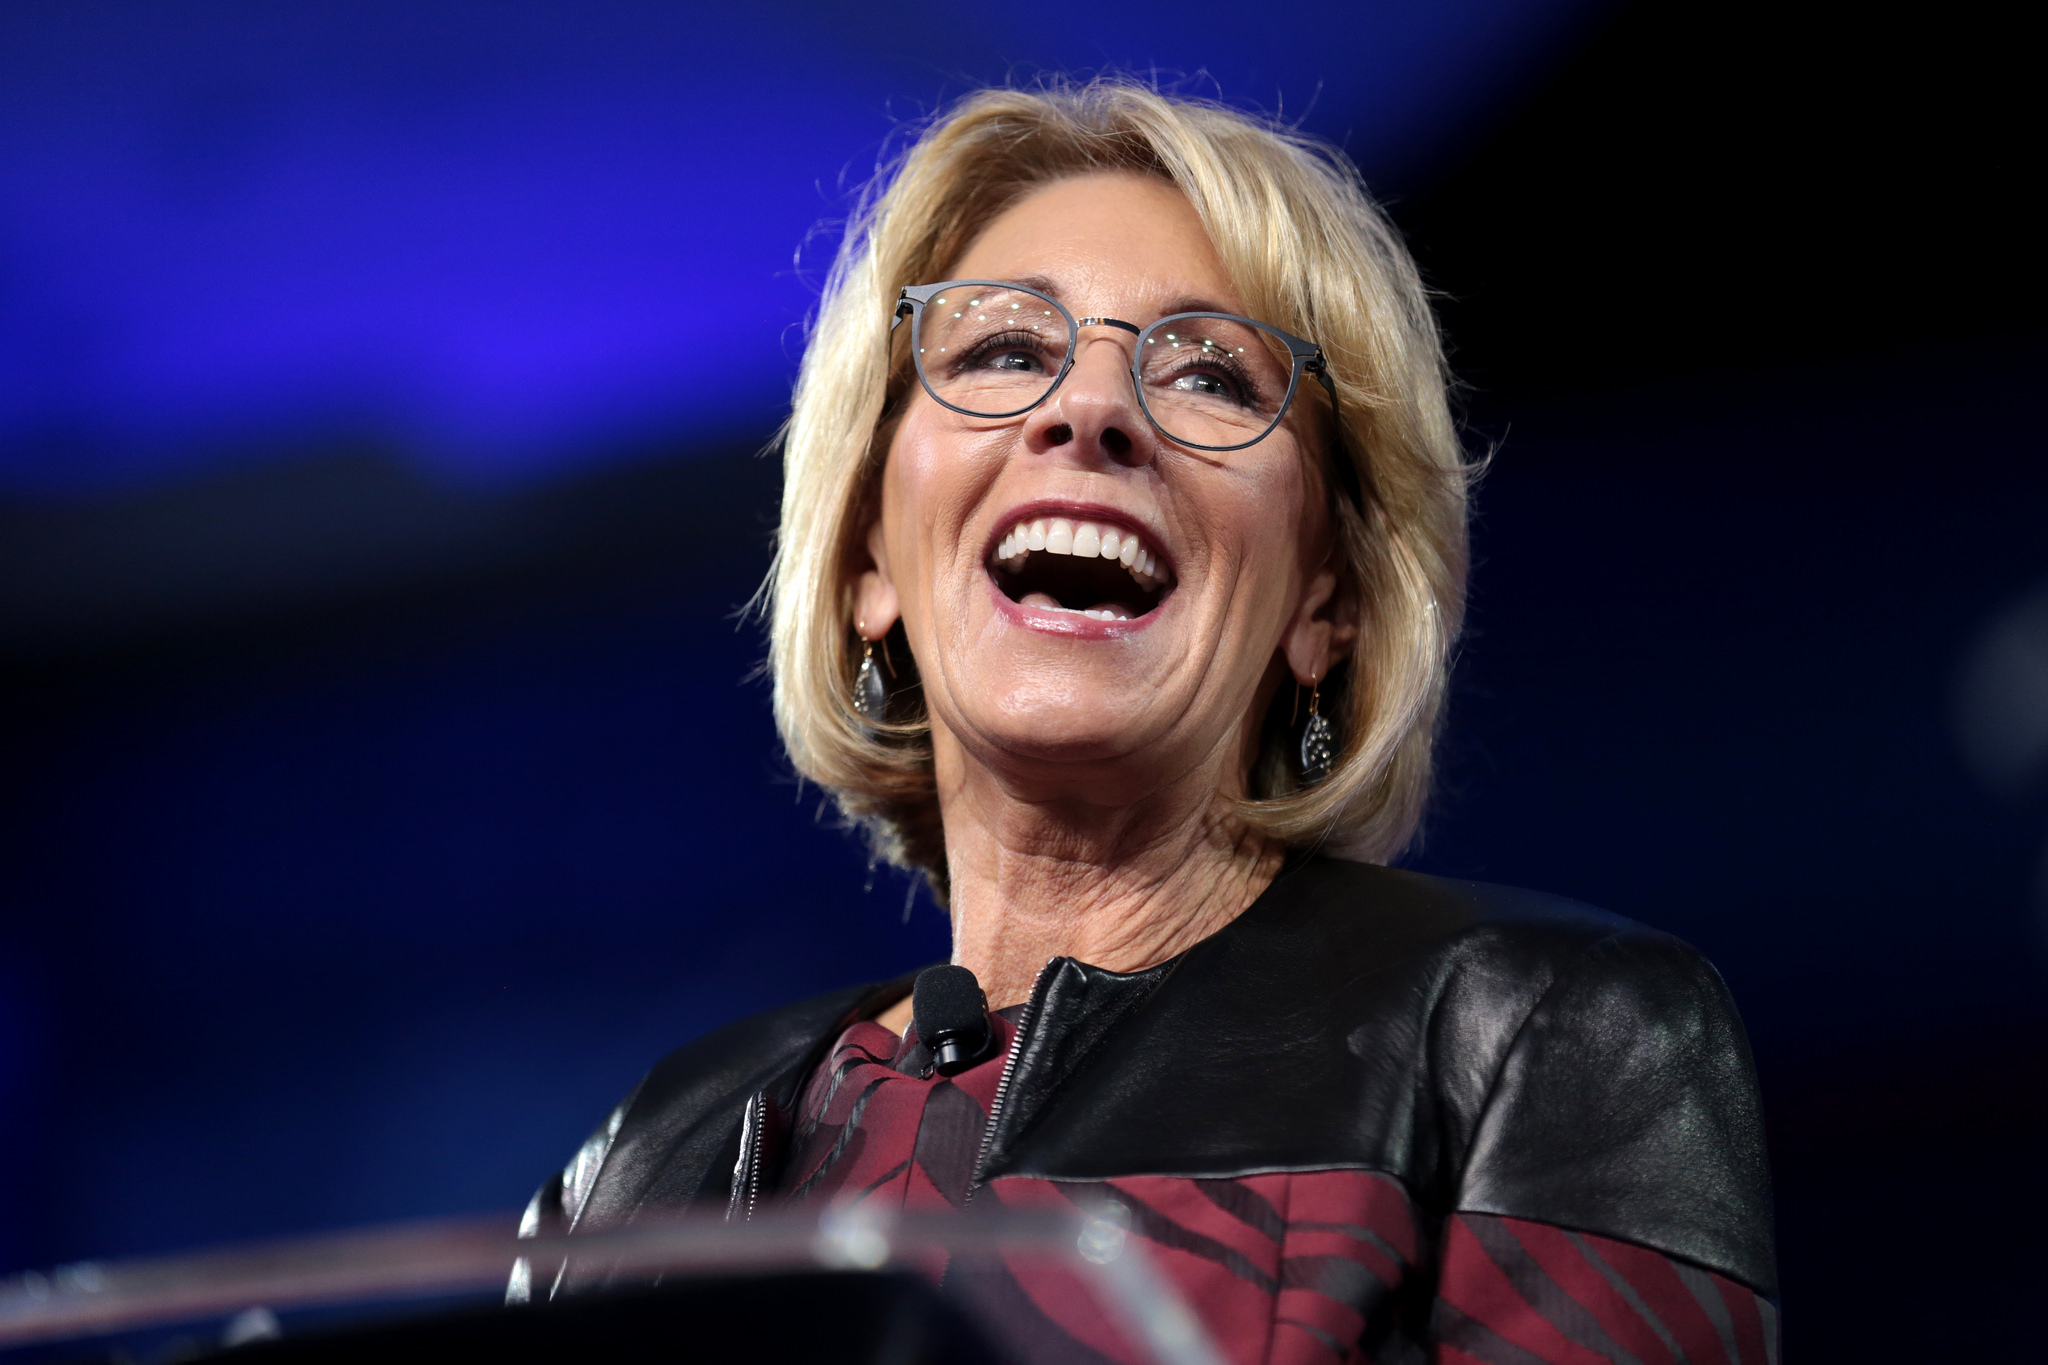 Betsy DeVos standing at a podium laughing